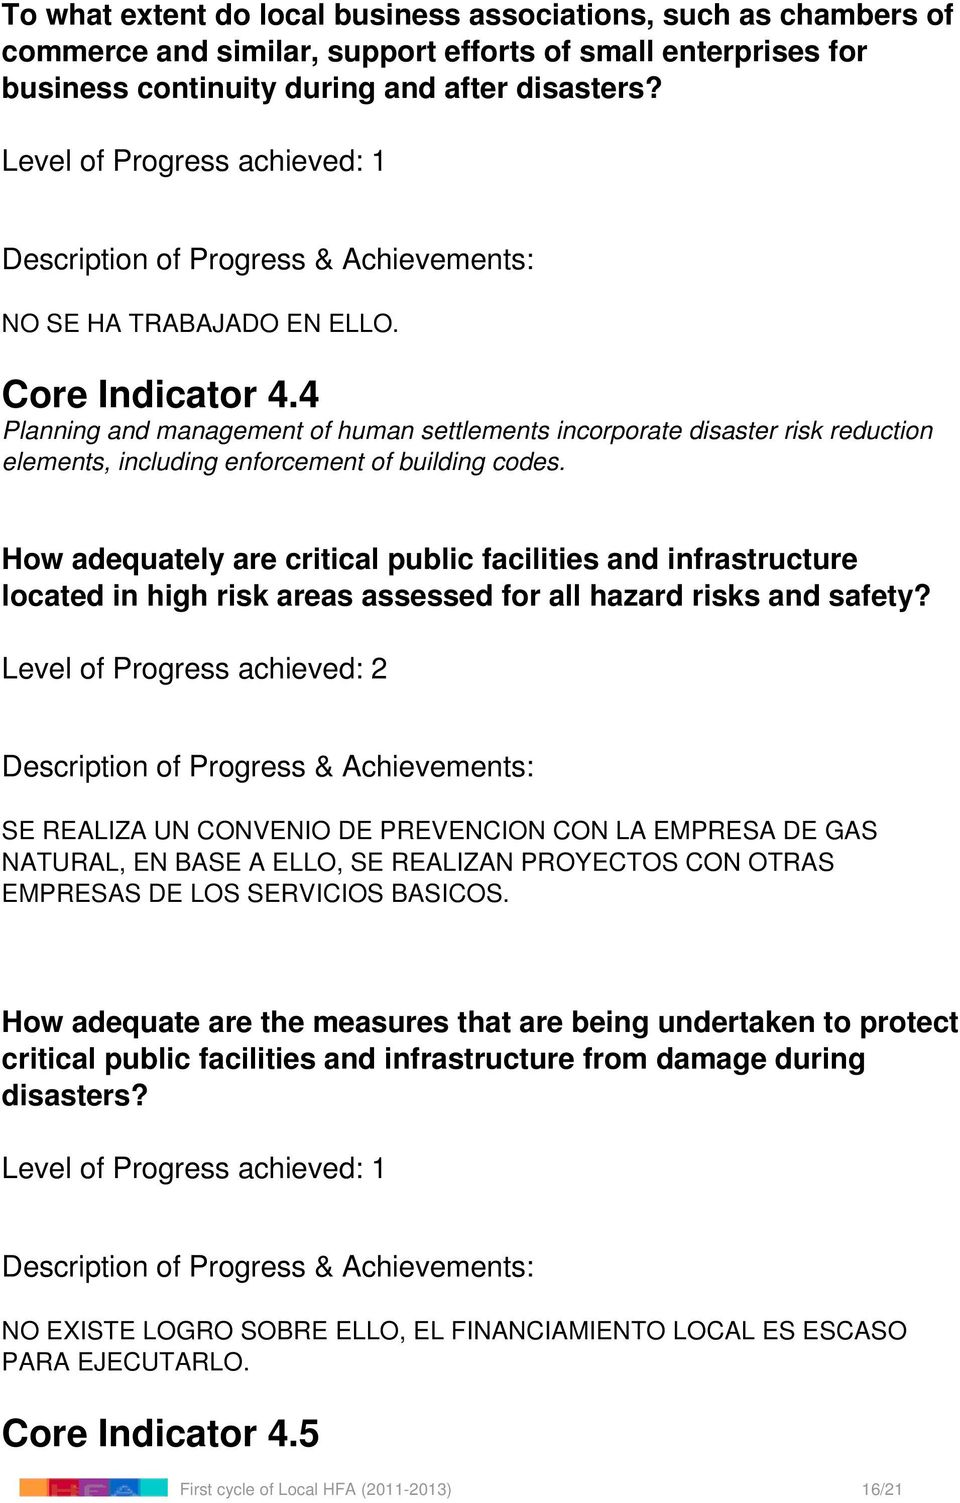 How adequately are critical public facilities and infrastructure located in high risk areas assessed for all hazard risks and safety?